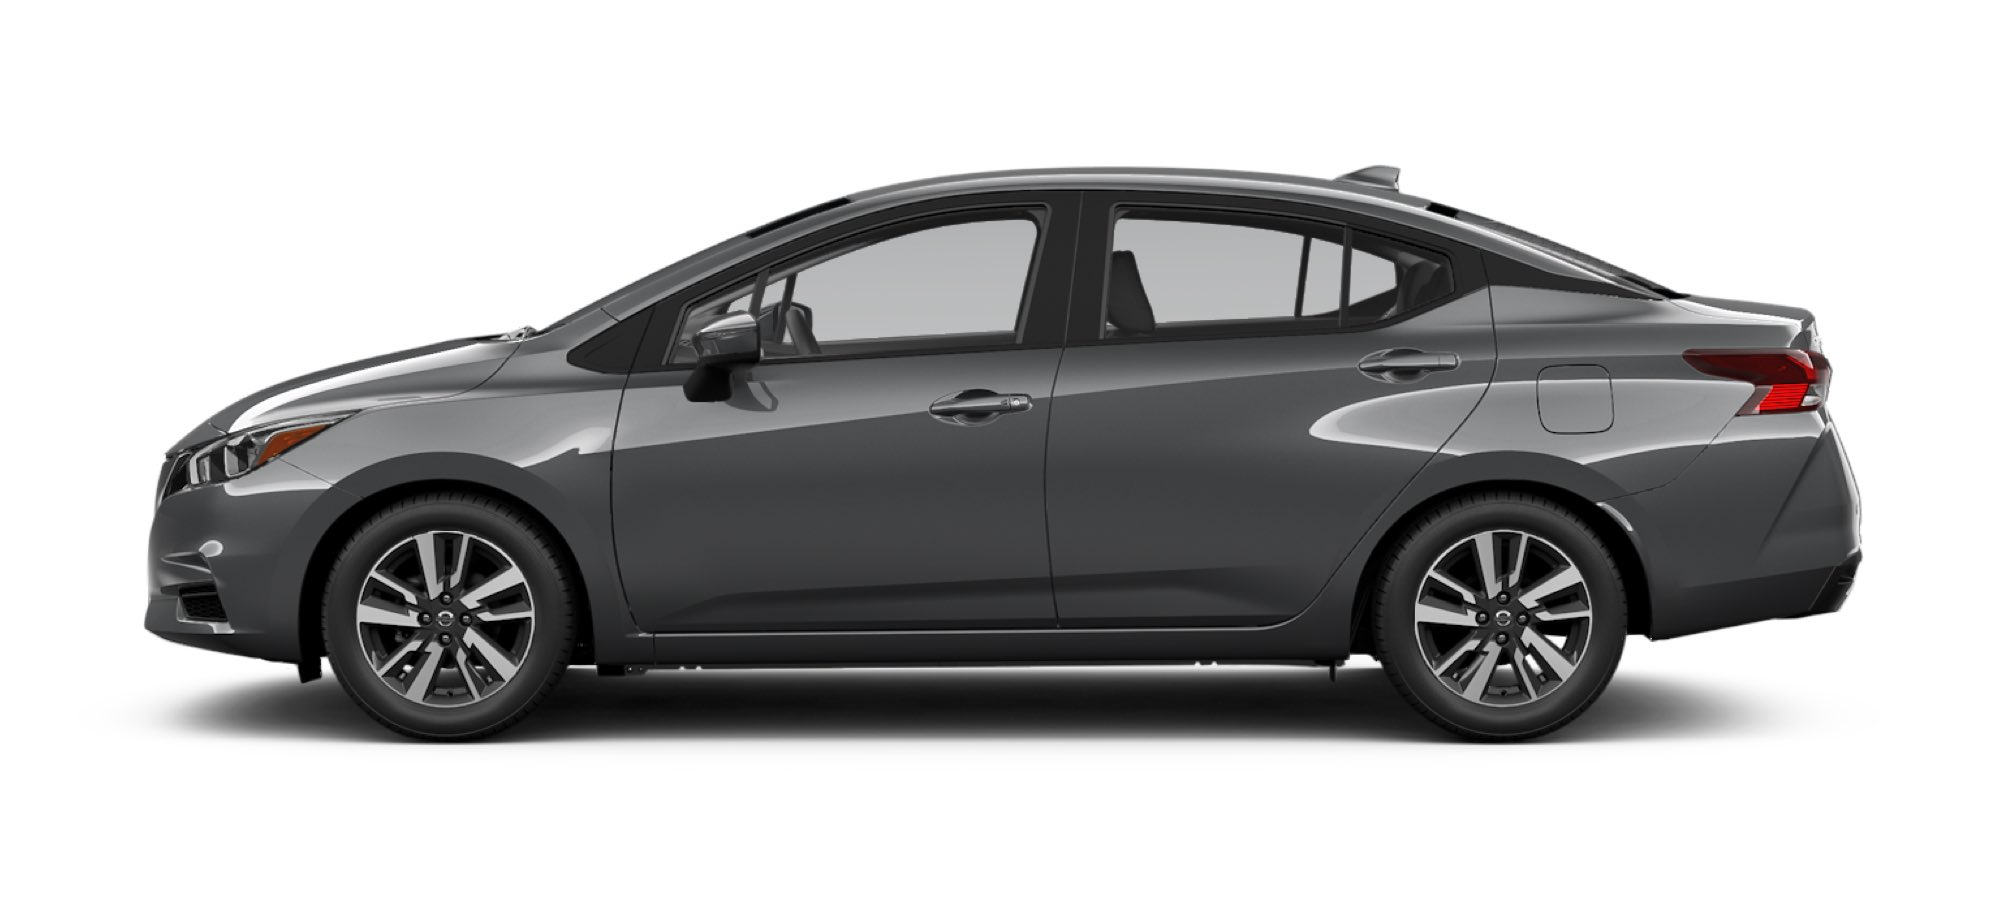 2021 Nissan Versa in Gun Metallic